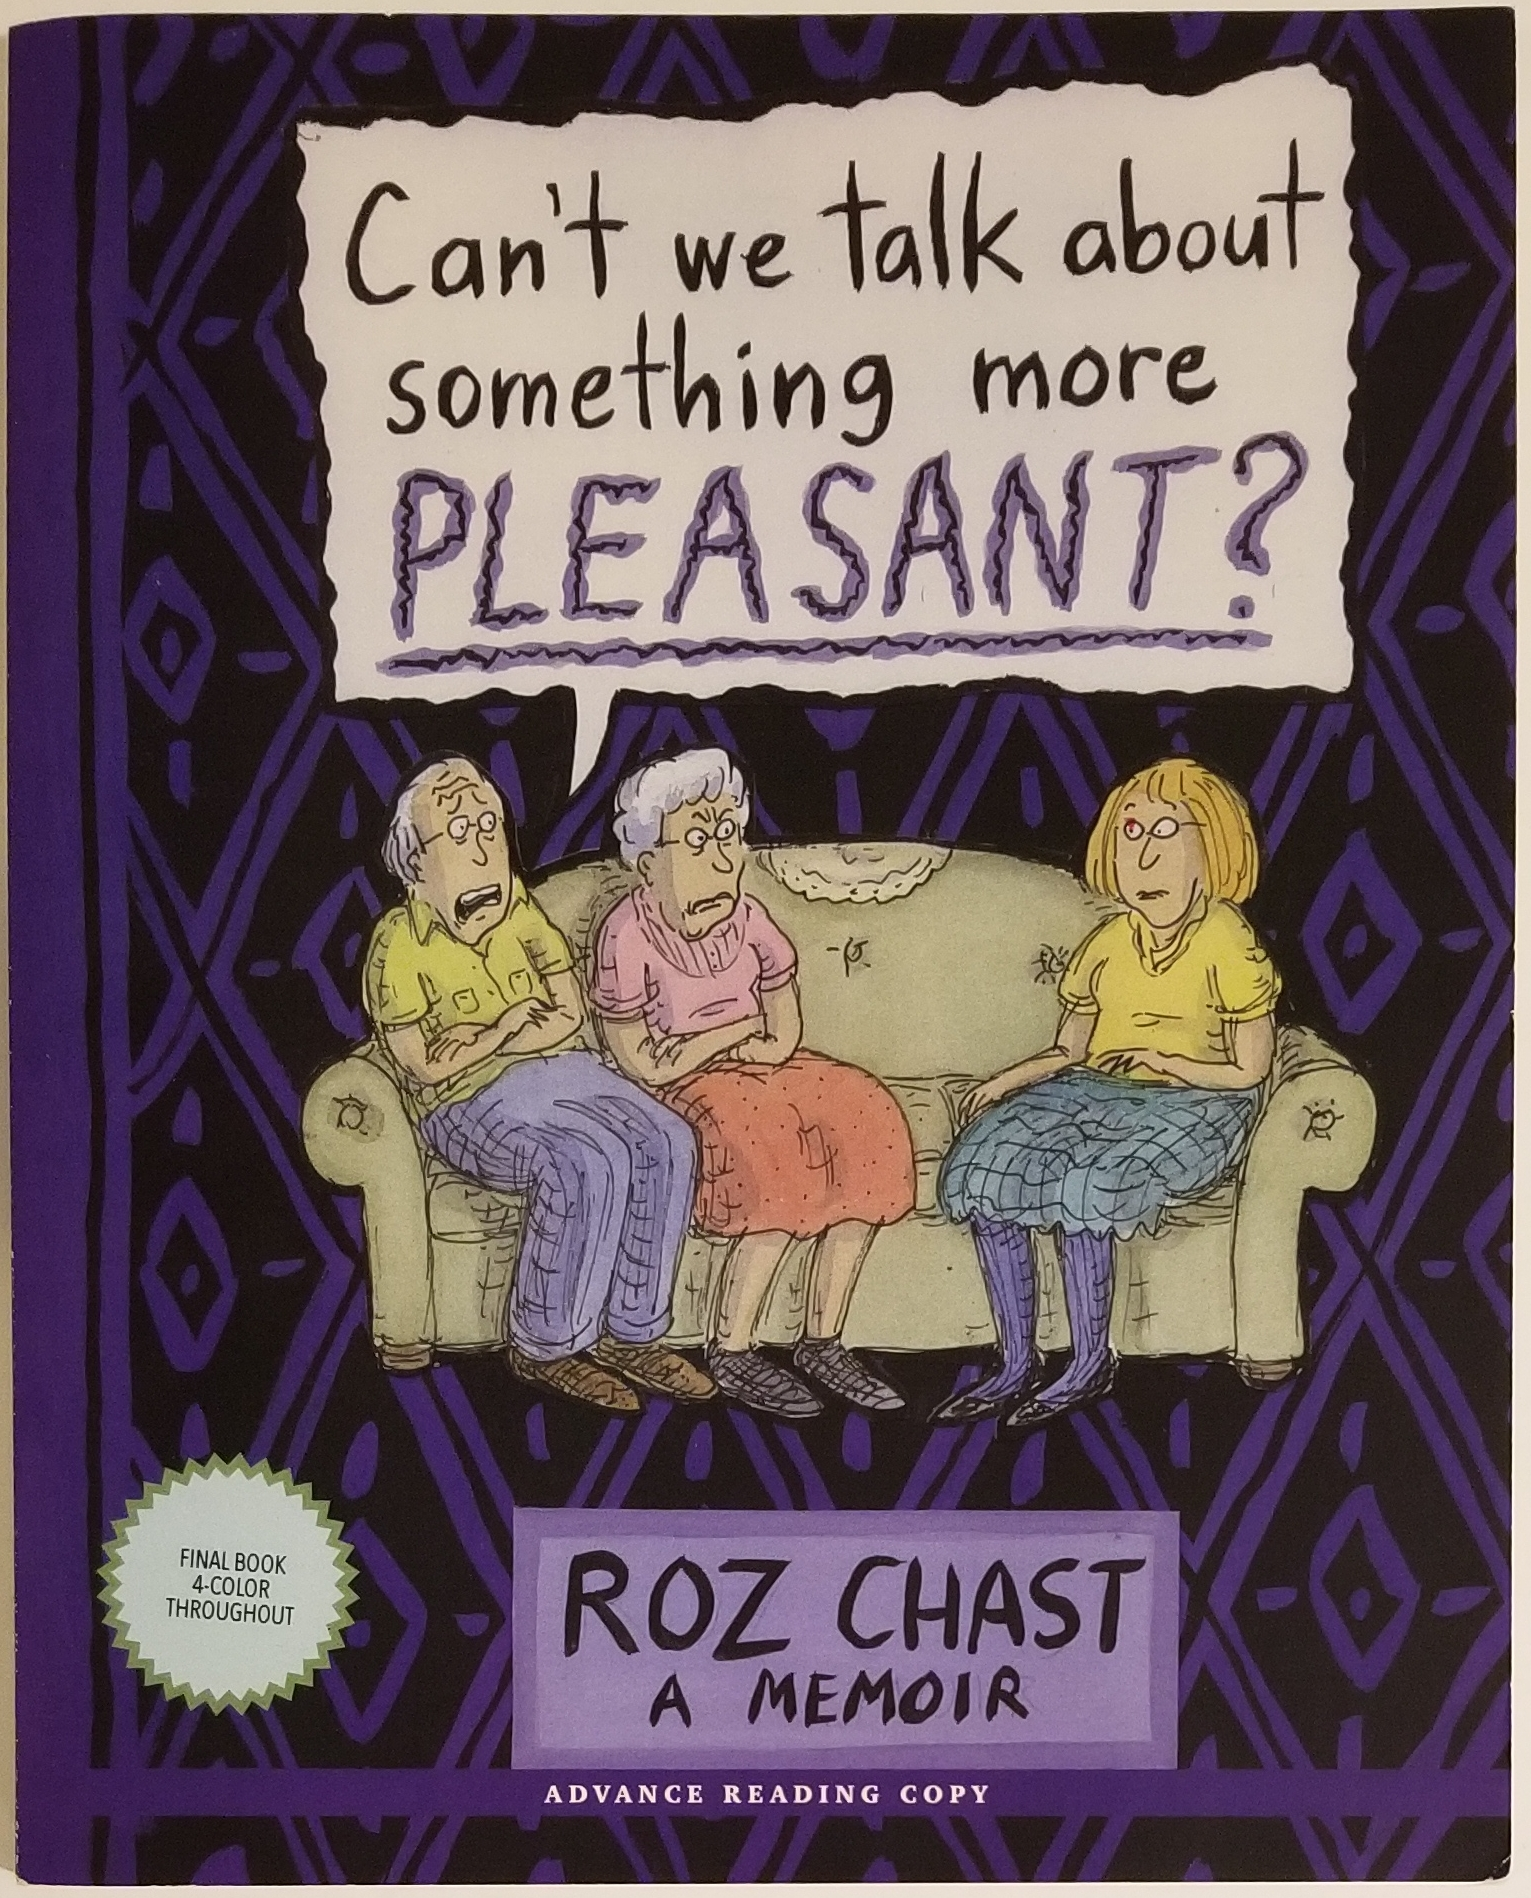 CAN'T WE TALK ABOUT SOMETHING MORE PLEASANT? Roz Chast.